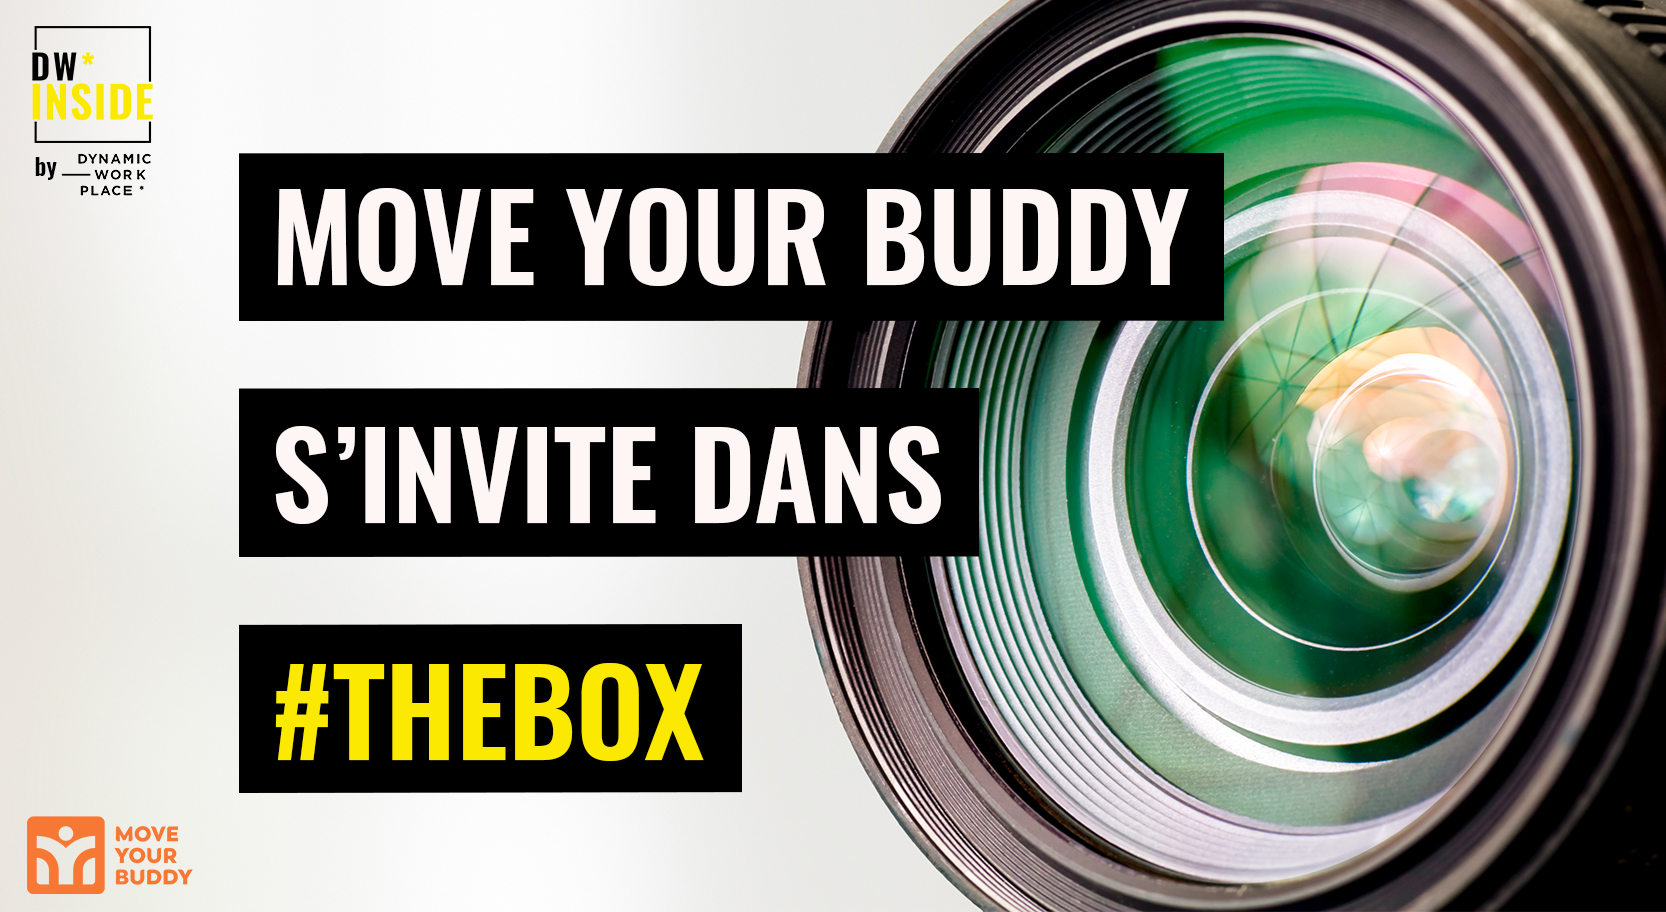 MYB s'invite dans #TheBox by DW* Inside